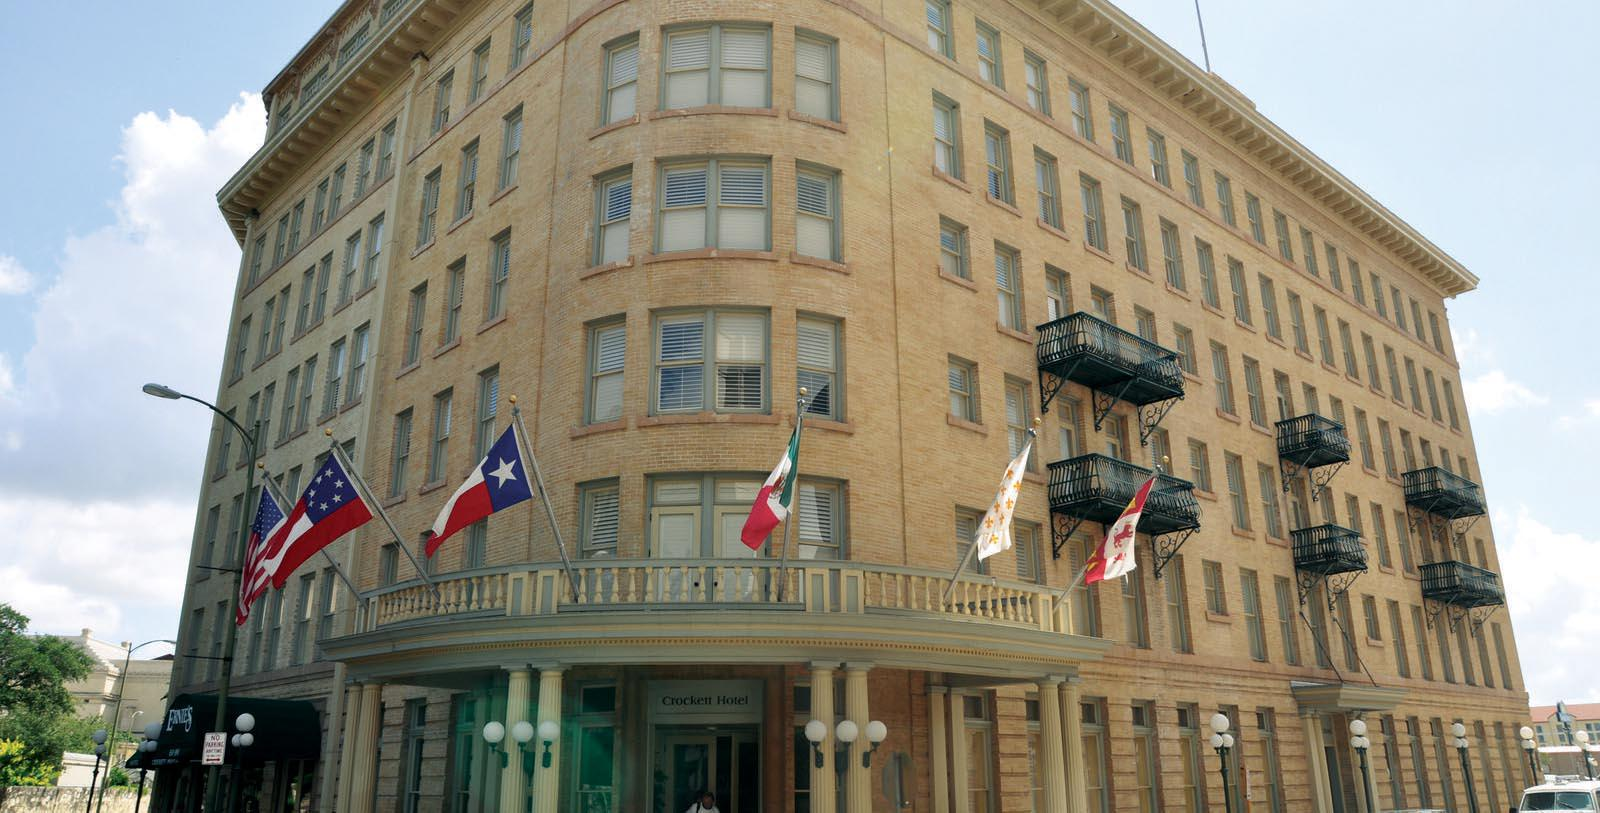 Image of Entrance The Crockett Hotel, 1909, Member of Historic Hotels of America, in San Antonio, Texas, Special Offers, Discounted Rates, Families, Romantic Escape, Honeymoons, Anniversaries, Reunions